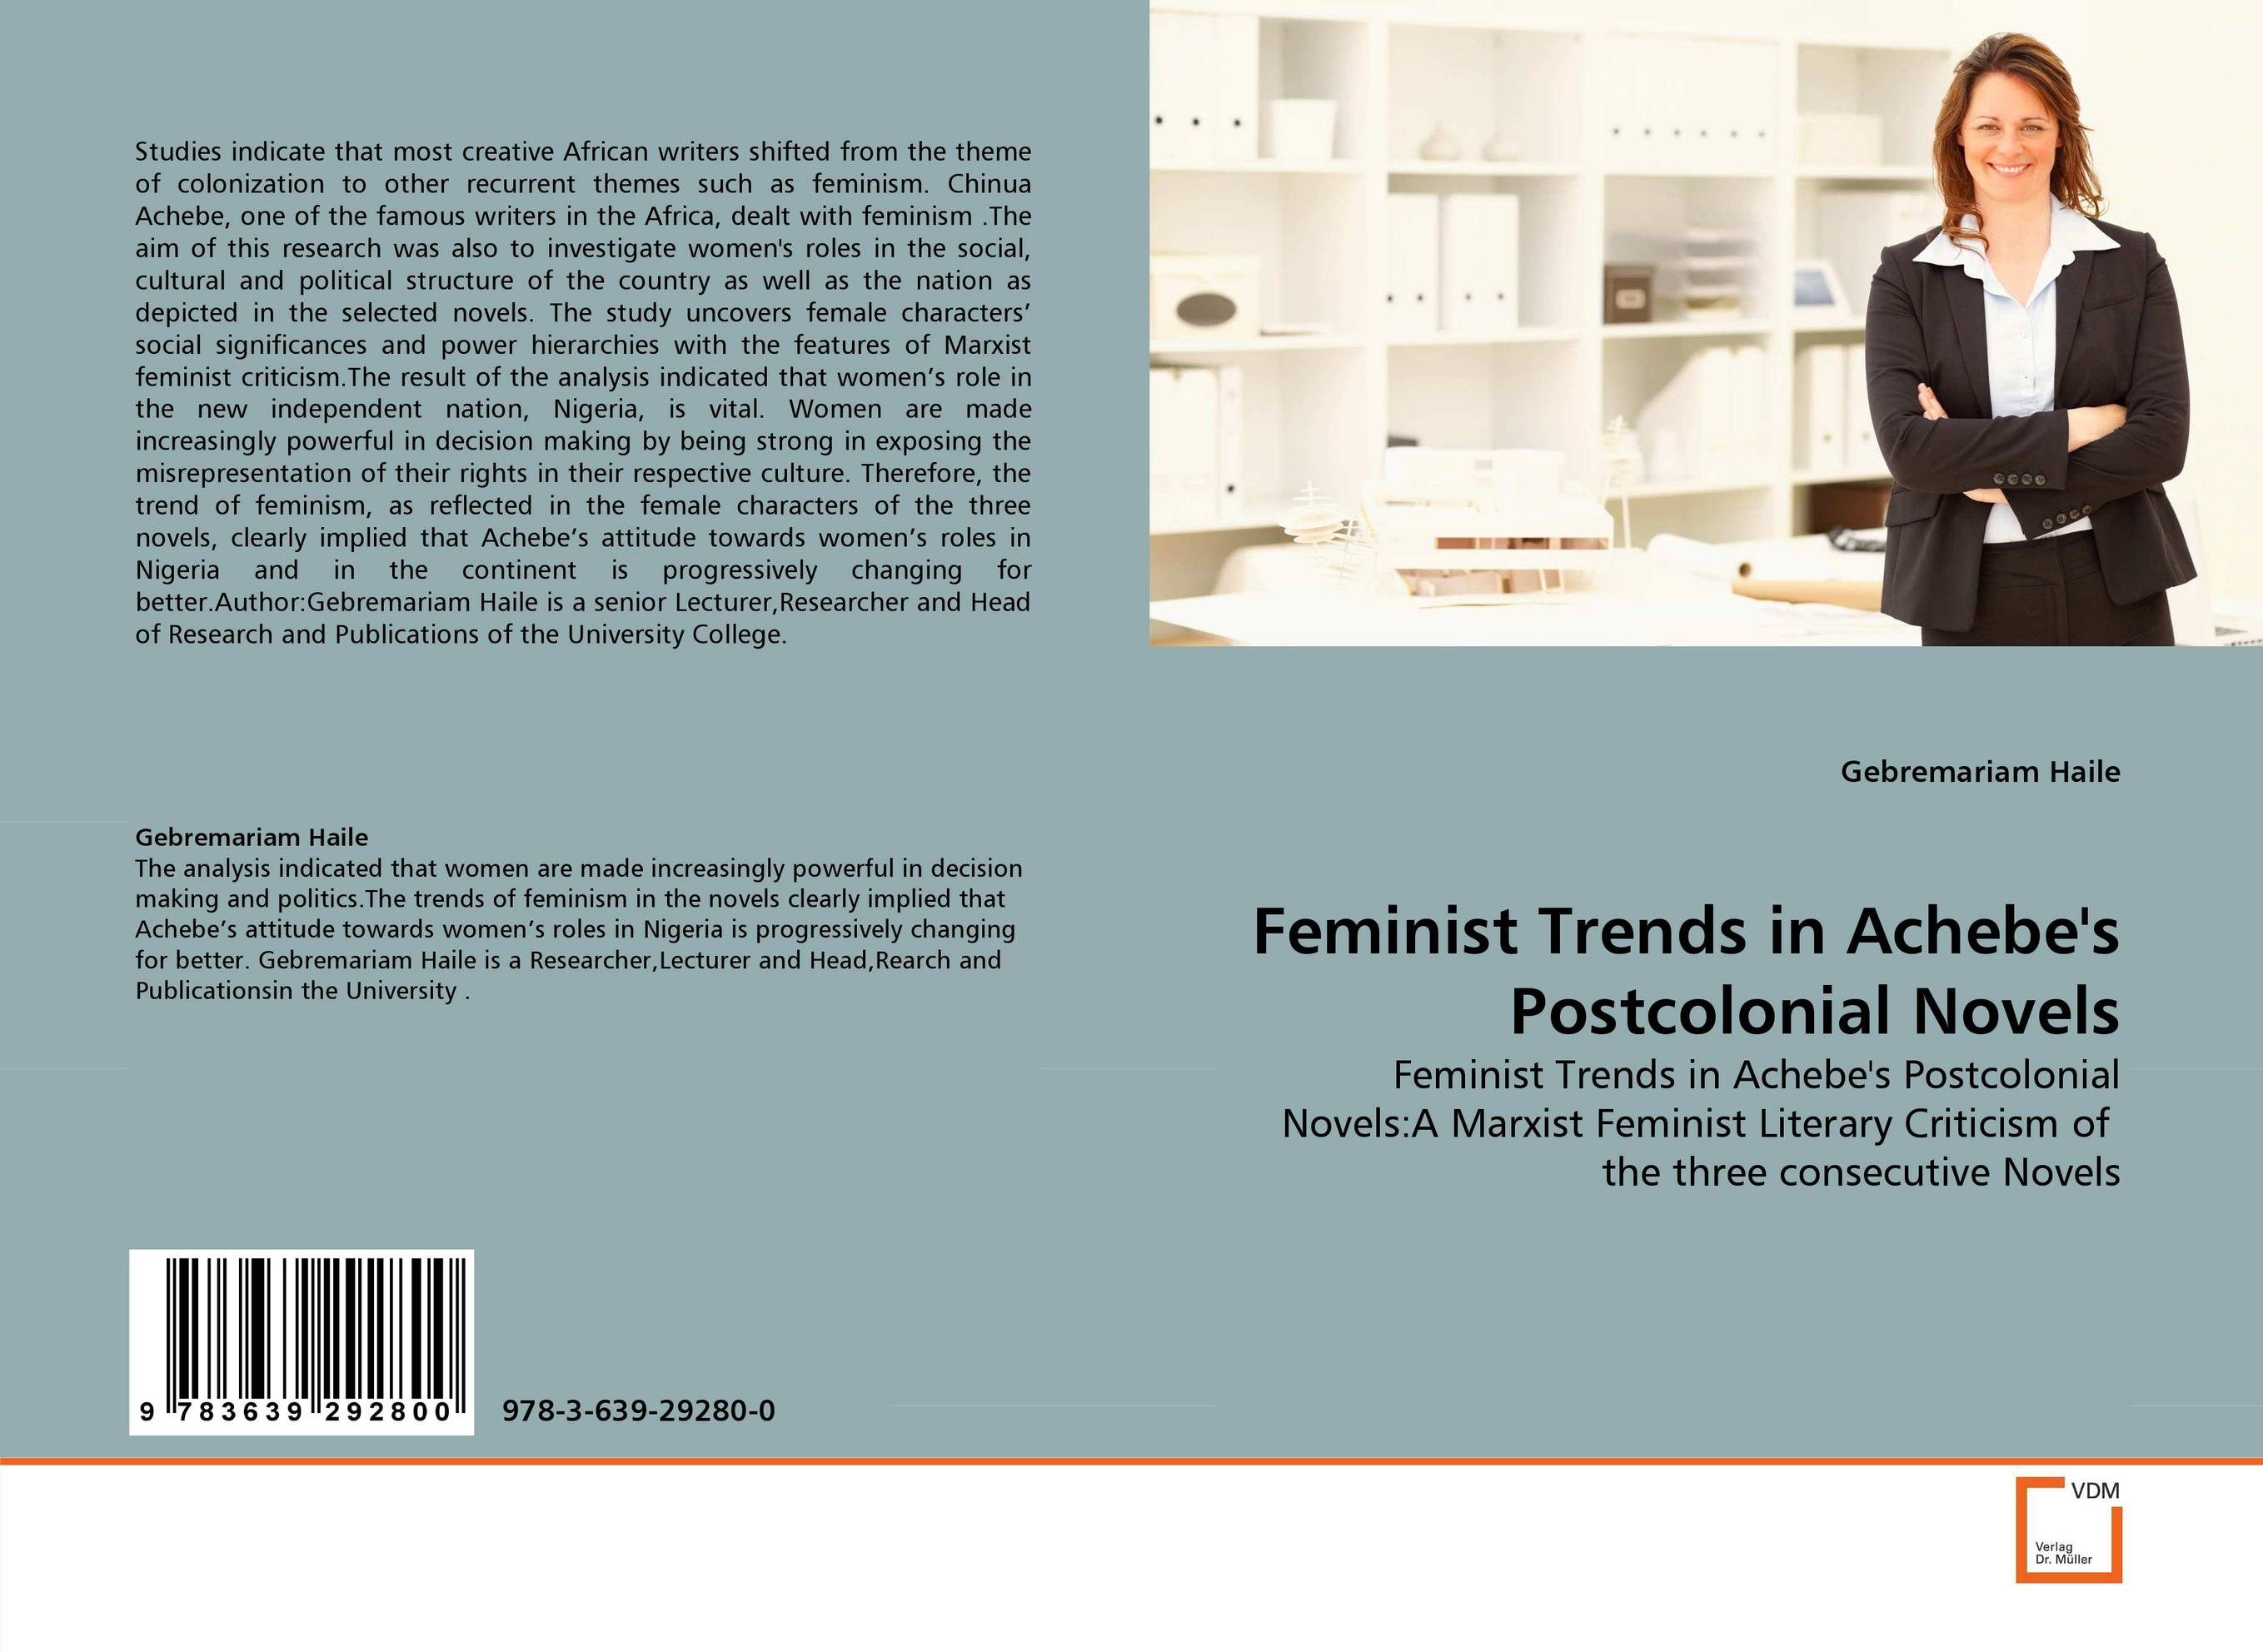 Feminist Trends in Achebe''s Postcolonial Novels cultural and linguistic hybridity in postcolonial text